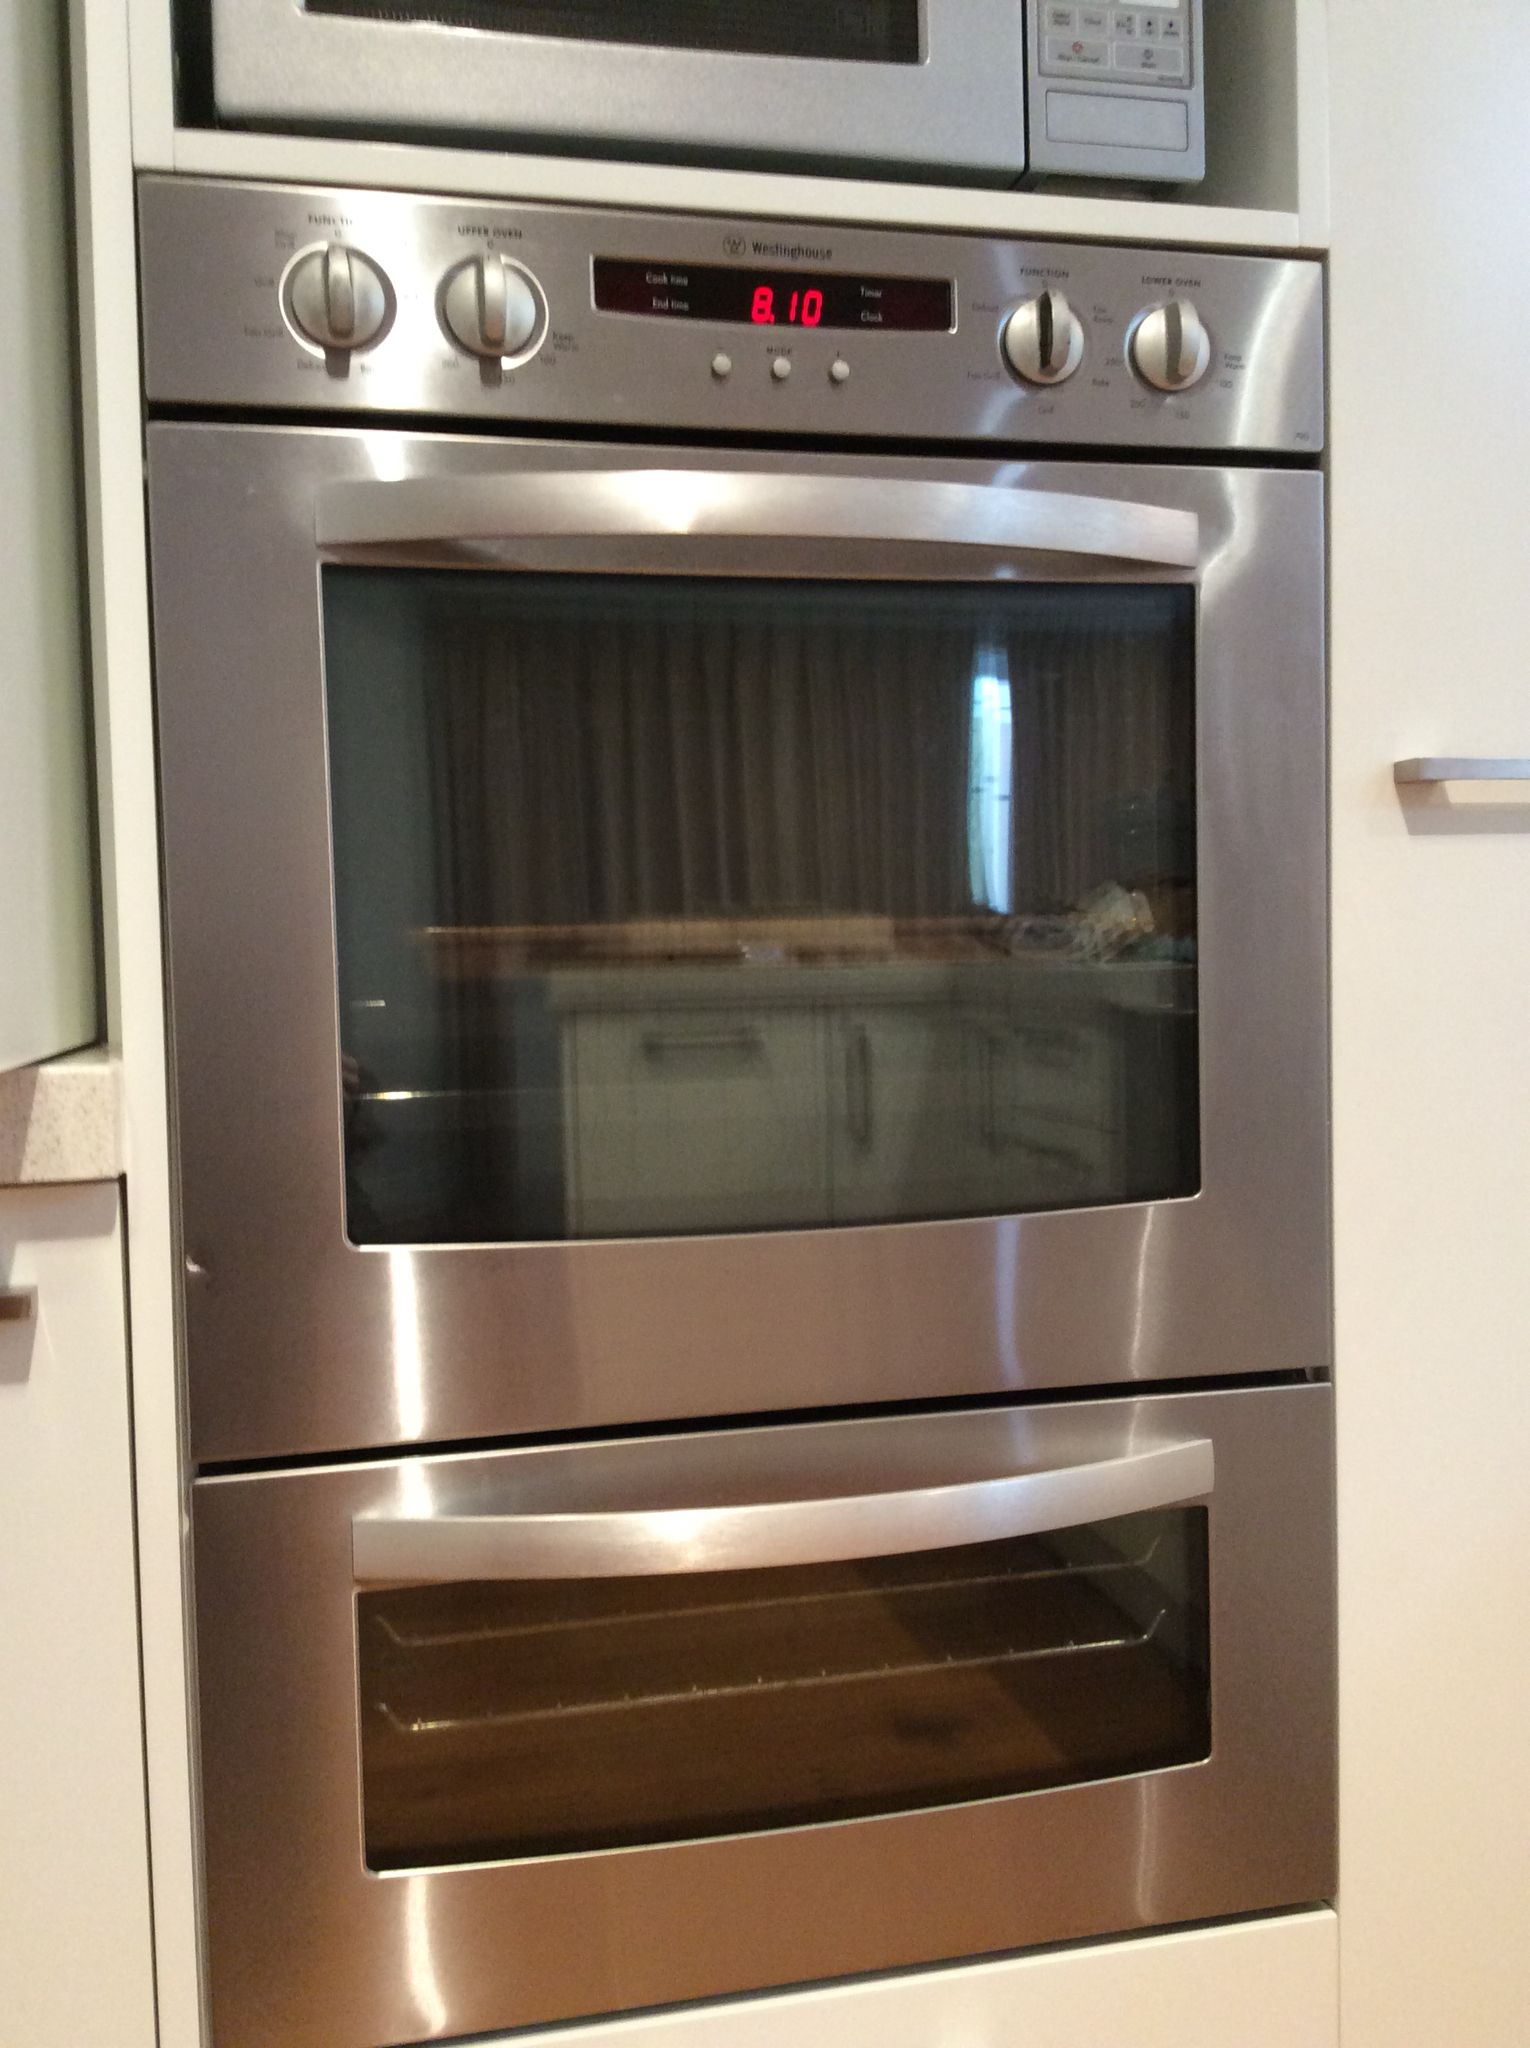 Westinghouse double oven - our old oven. Needs to be a double oven ...